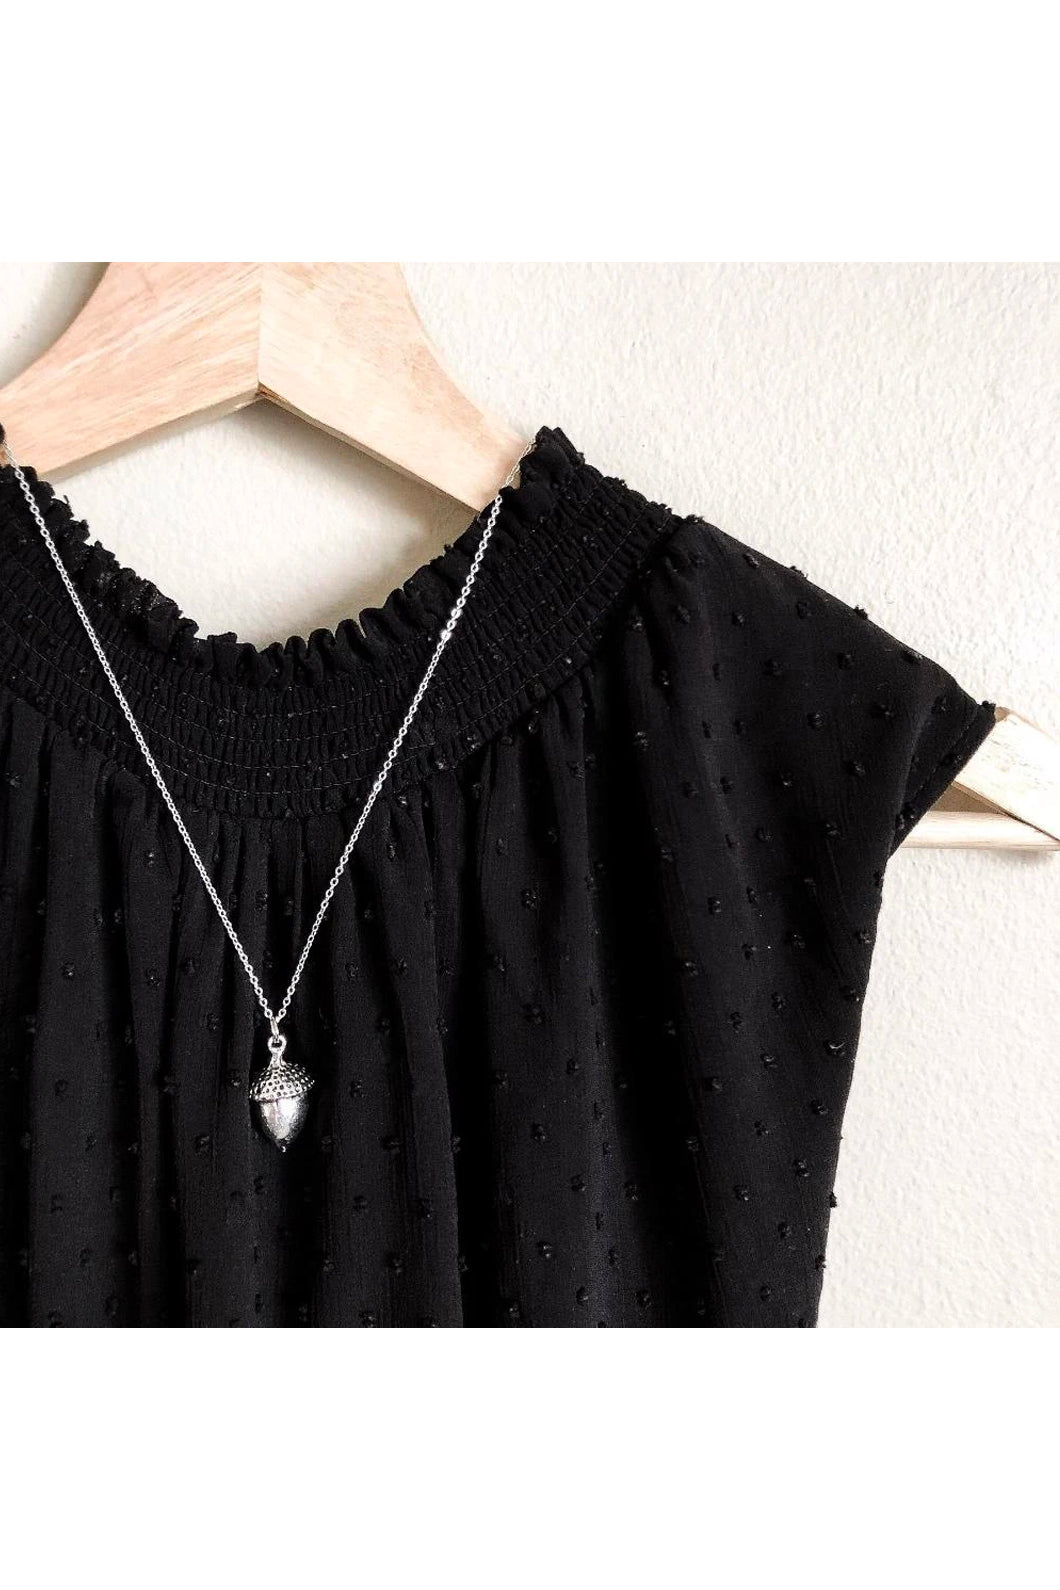 Large acorn necklace by Birch Jewellery; shown in silver; flat lay; styled on a black top on a wooden hanger